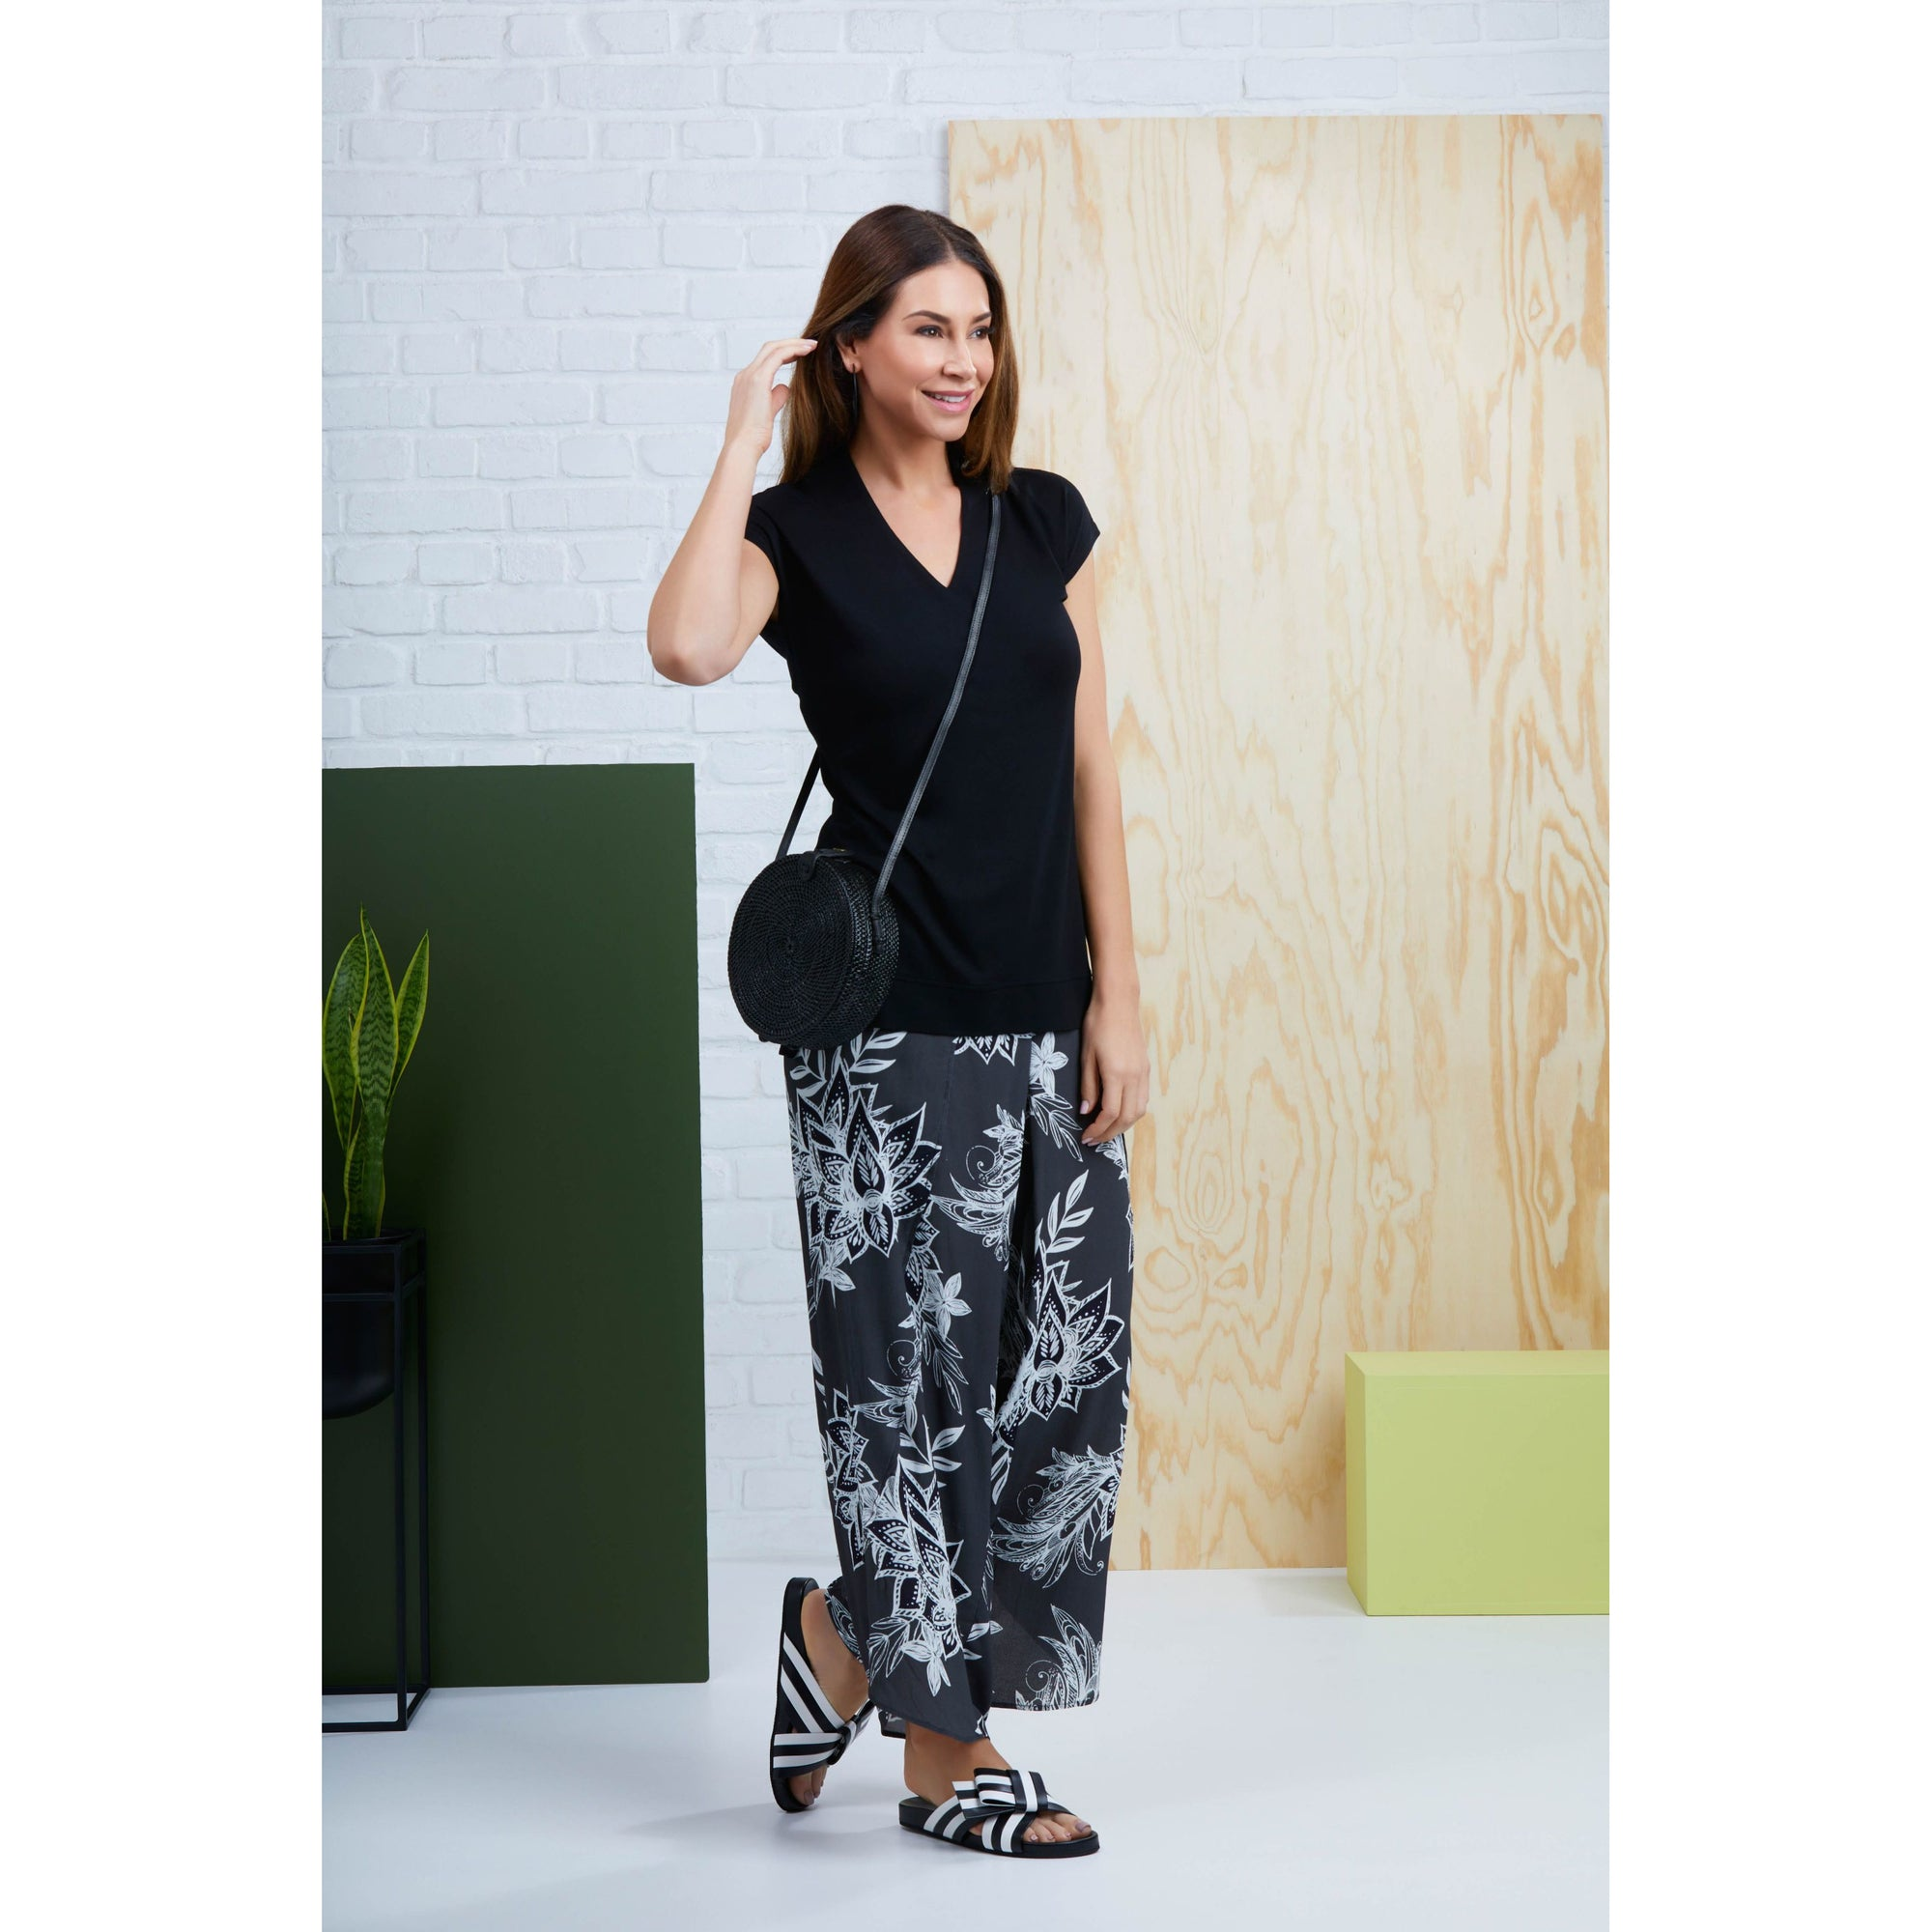 Foil Light Less Ordinary Pant in Cocoa Republic print.